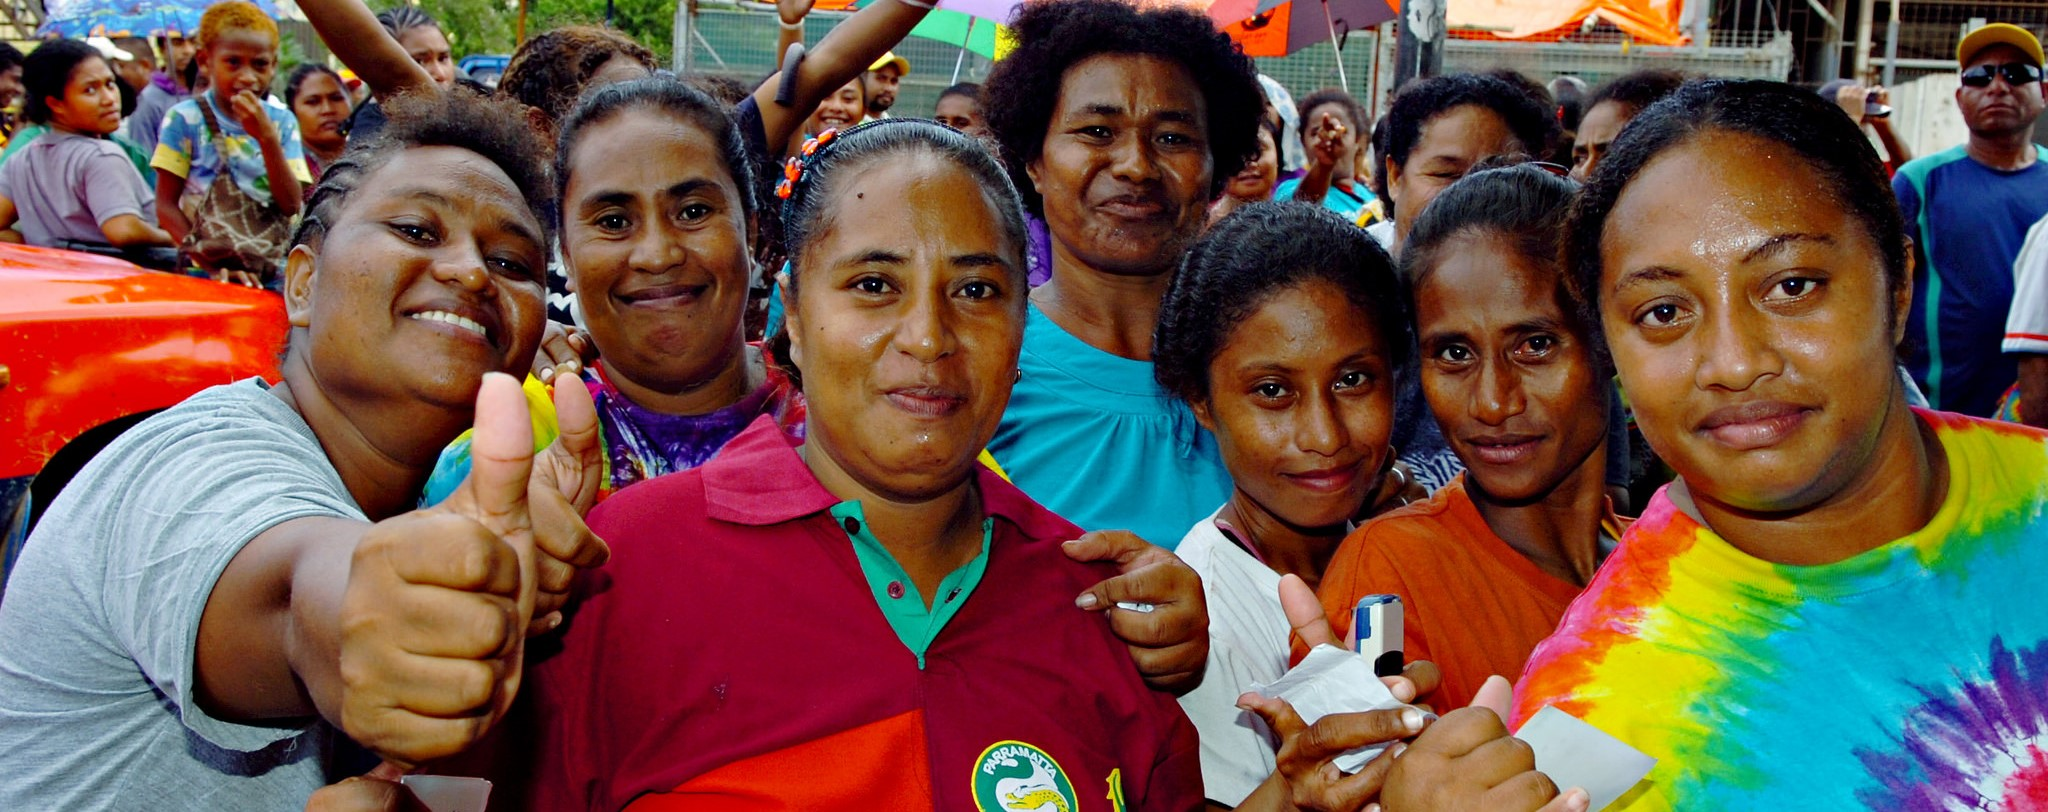 Voters in Port Moresby at PNG's 2012 election (Photo:Flickr/Commonwealth Secretariat)